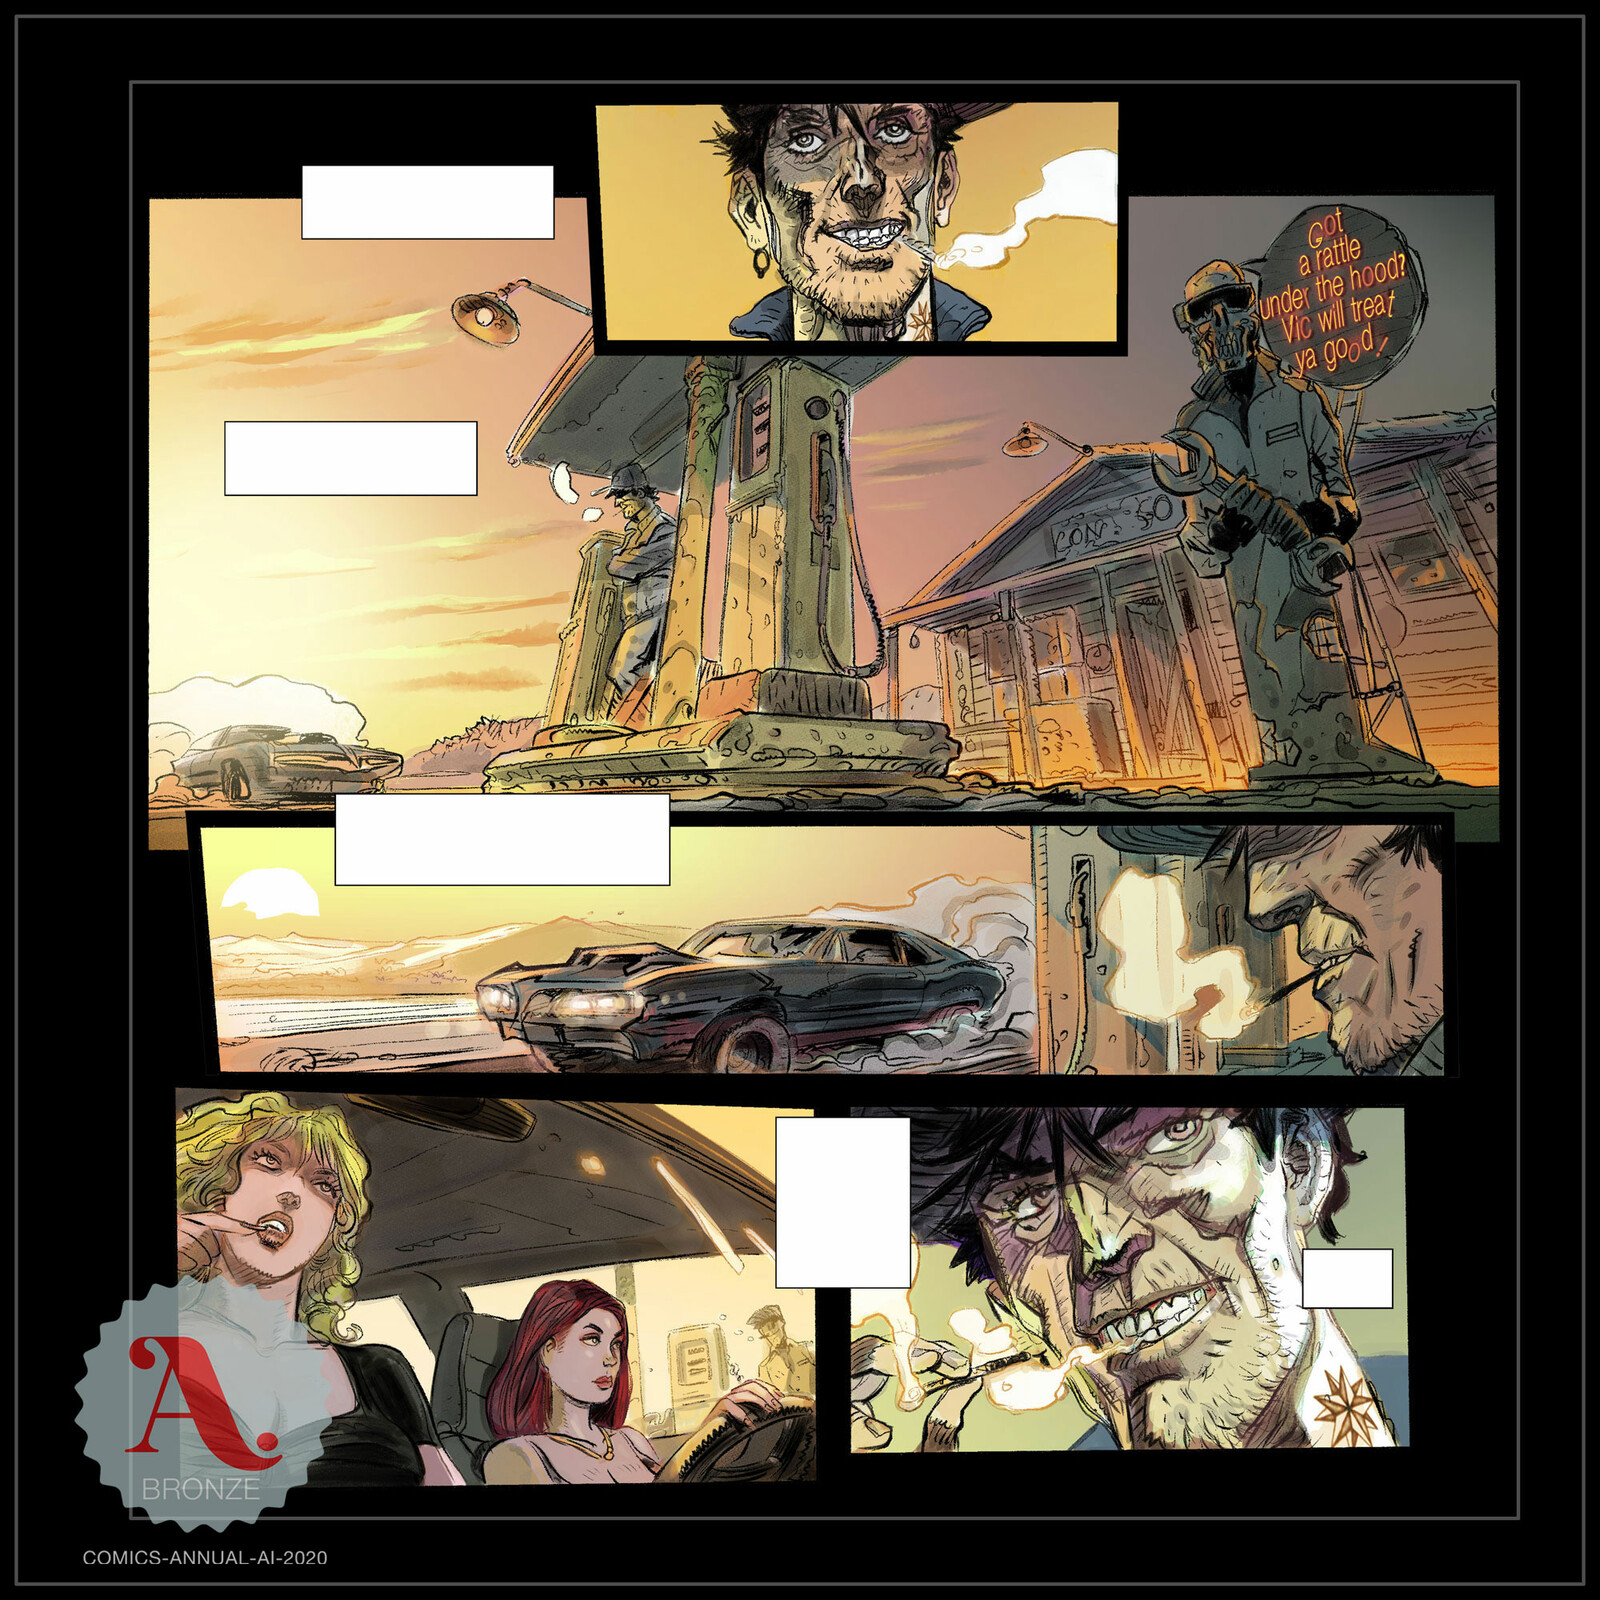 Megadeth: Death By Design - The Mechanix (Bronze Medal Comic Category award at A:I: Annual 2020)